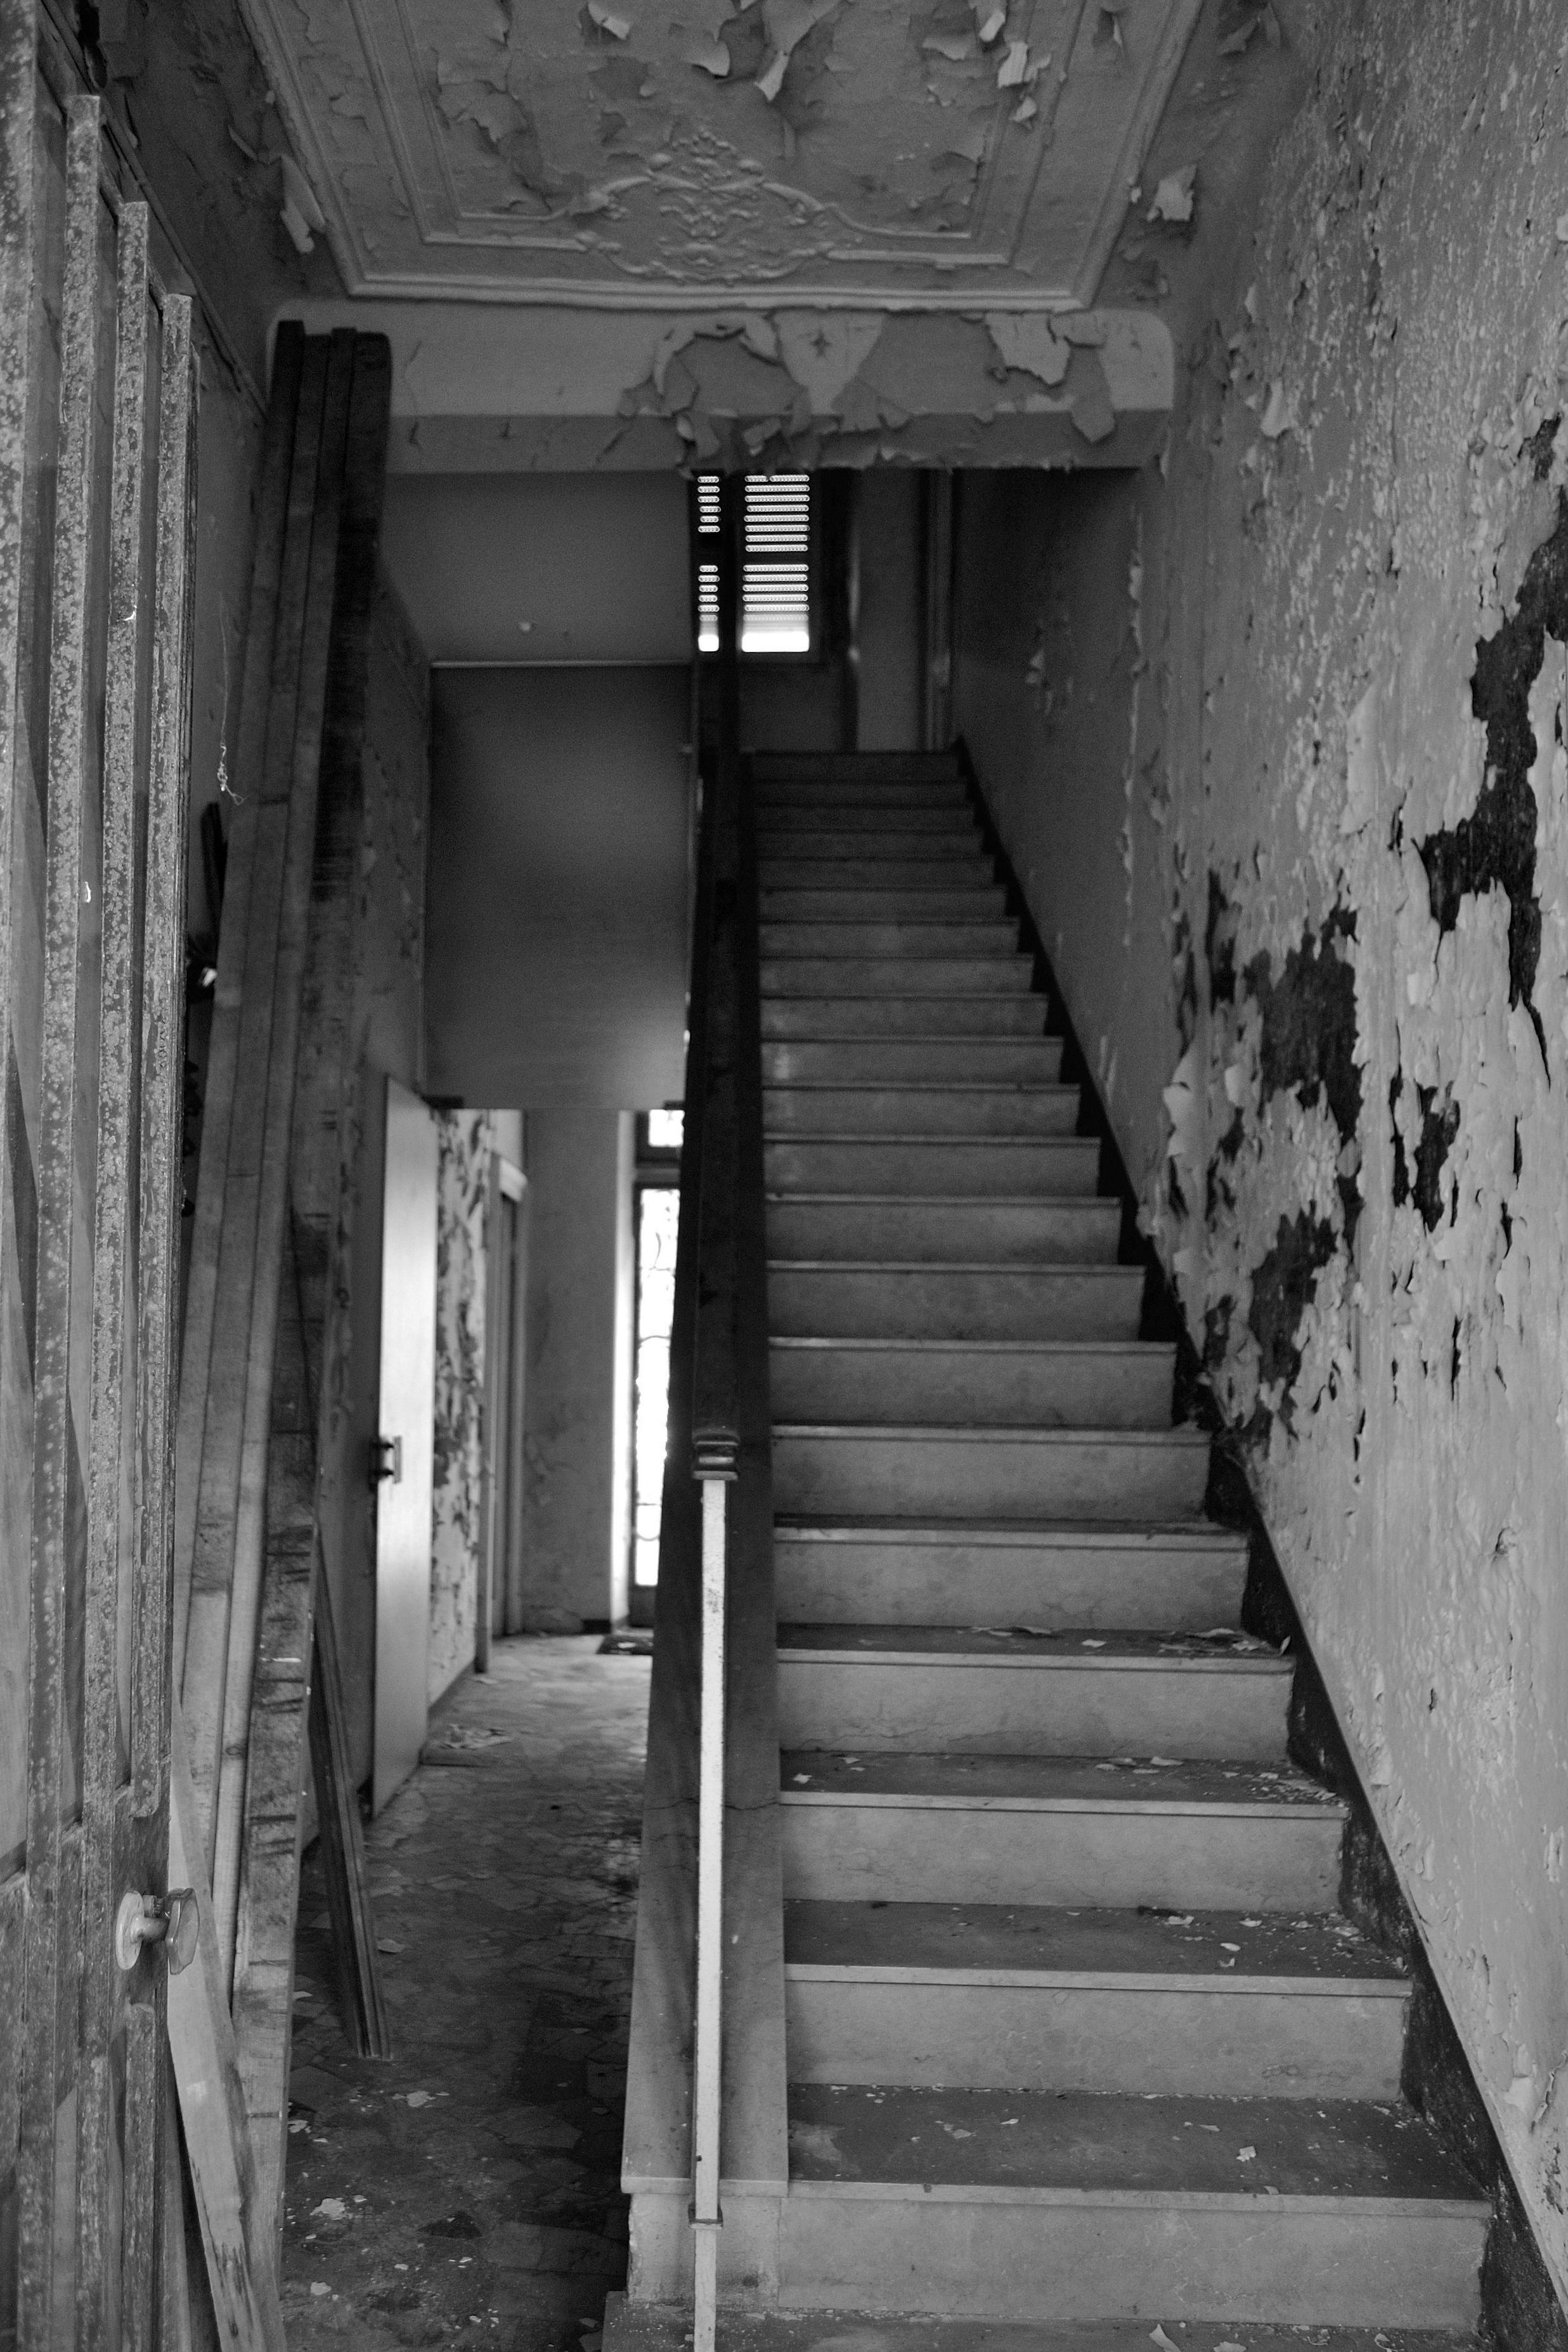 #stairs #staircase #propertyphotography #realestatephotography #abandoned